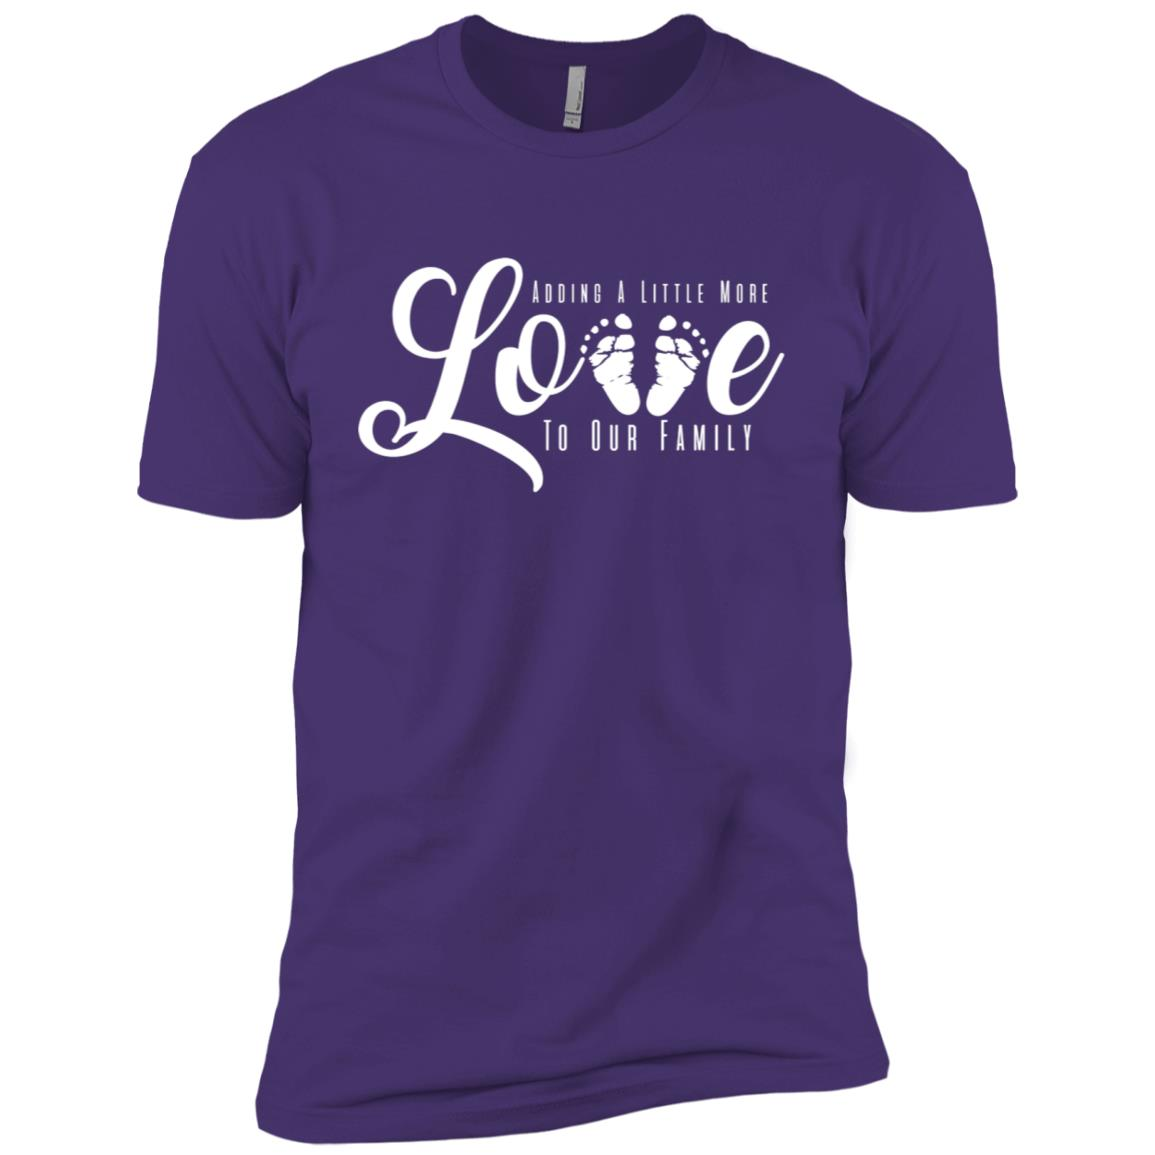 Adding A Little More Love to Our Family Men Short Sleeve T-Shirt